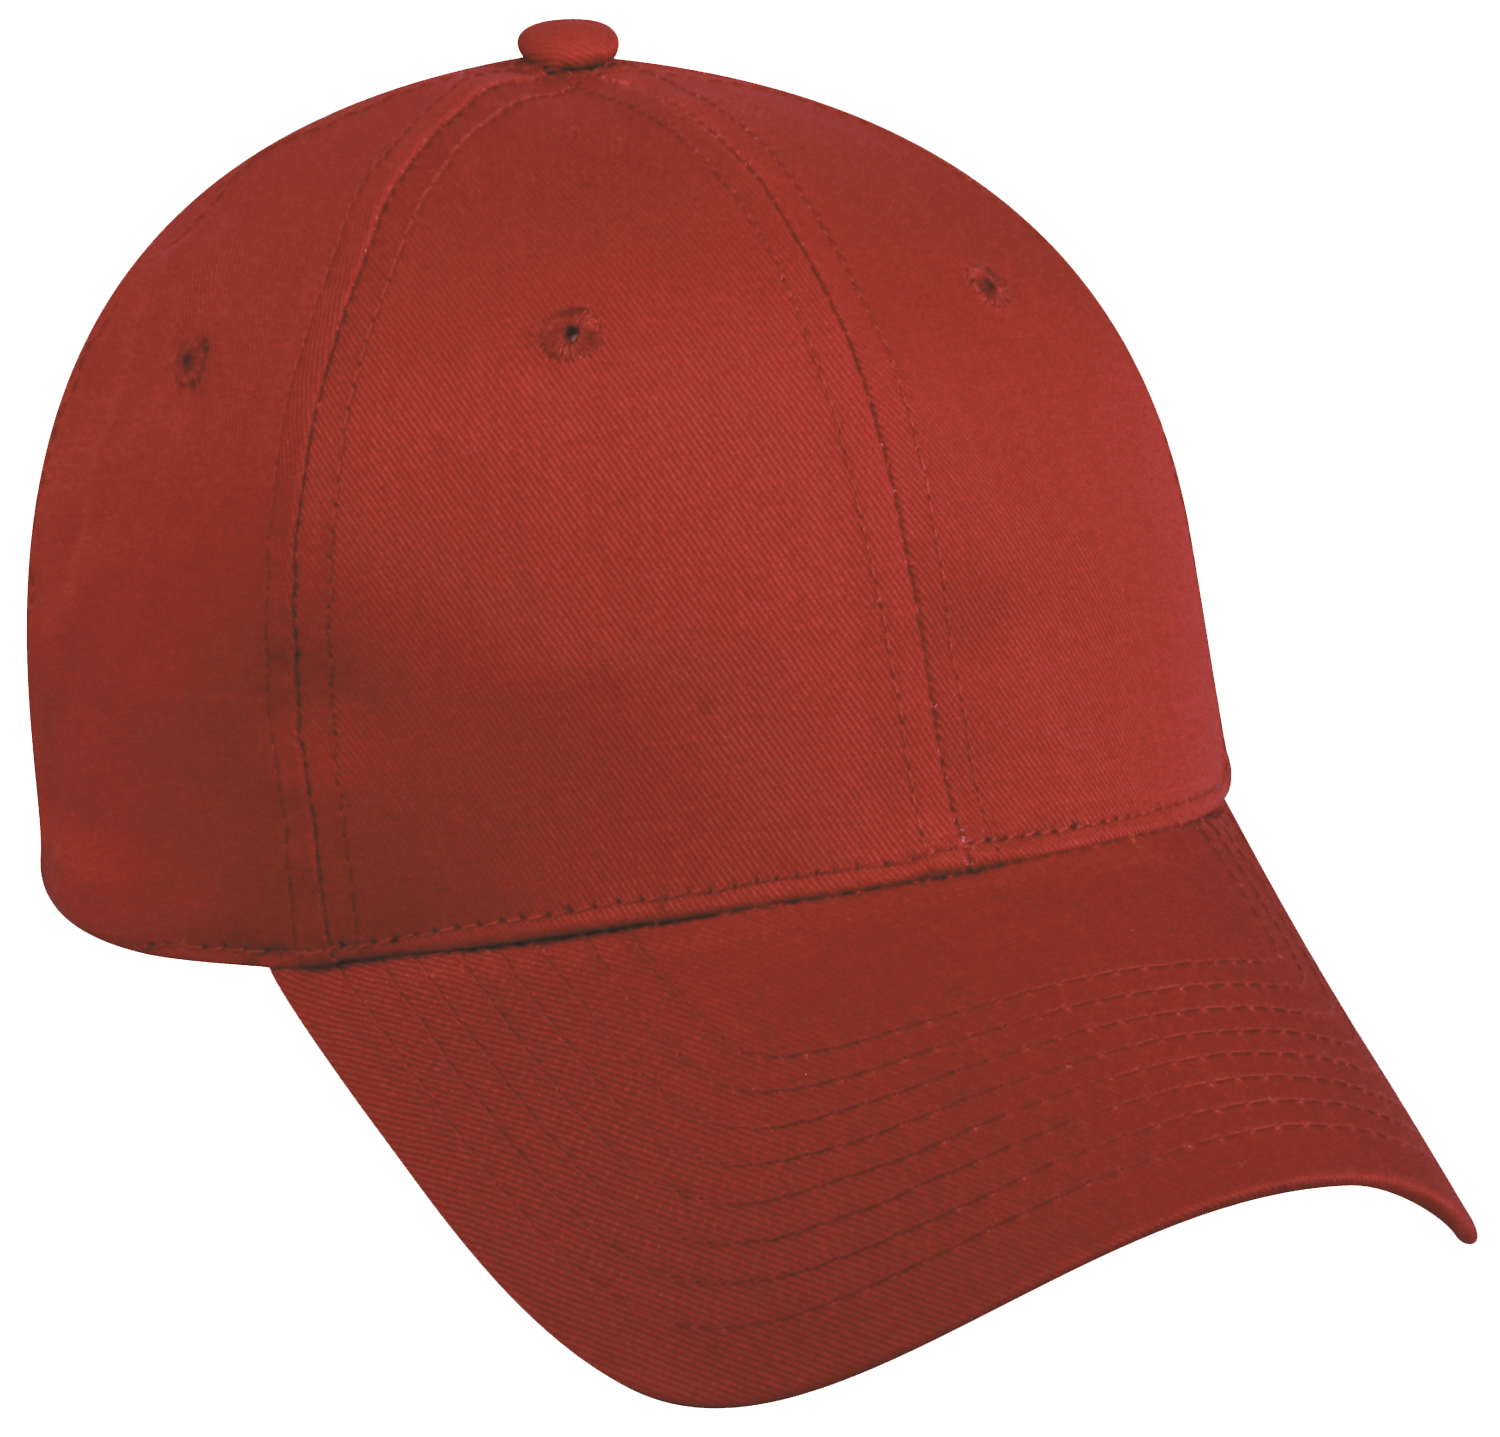 Download Baseball Cap PNG Transparent Image For Designing Projects.